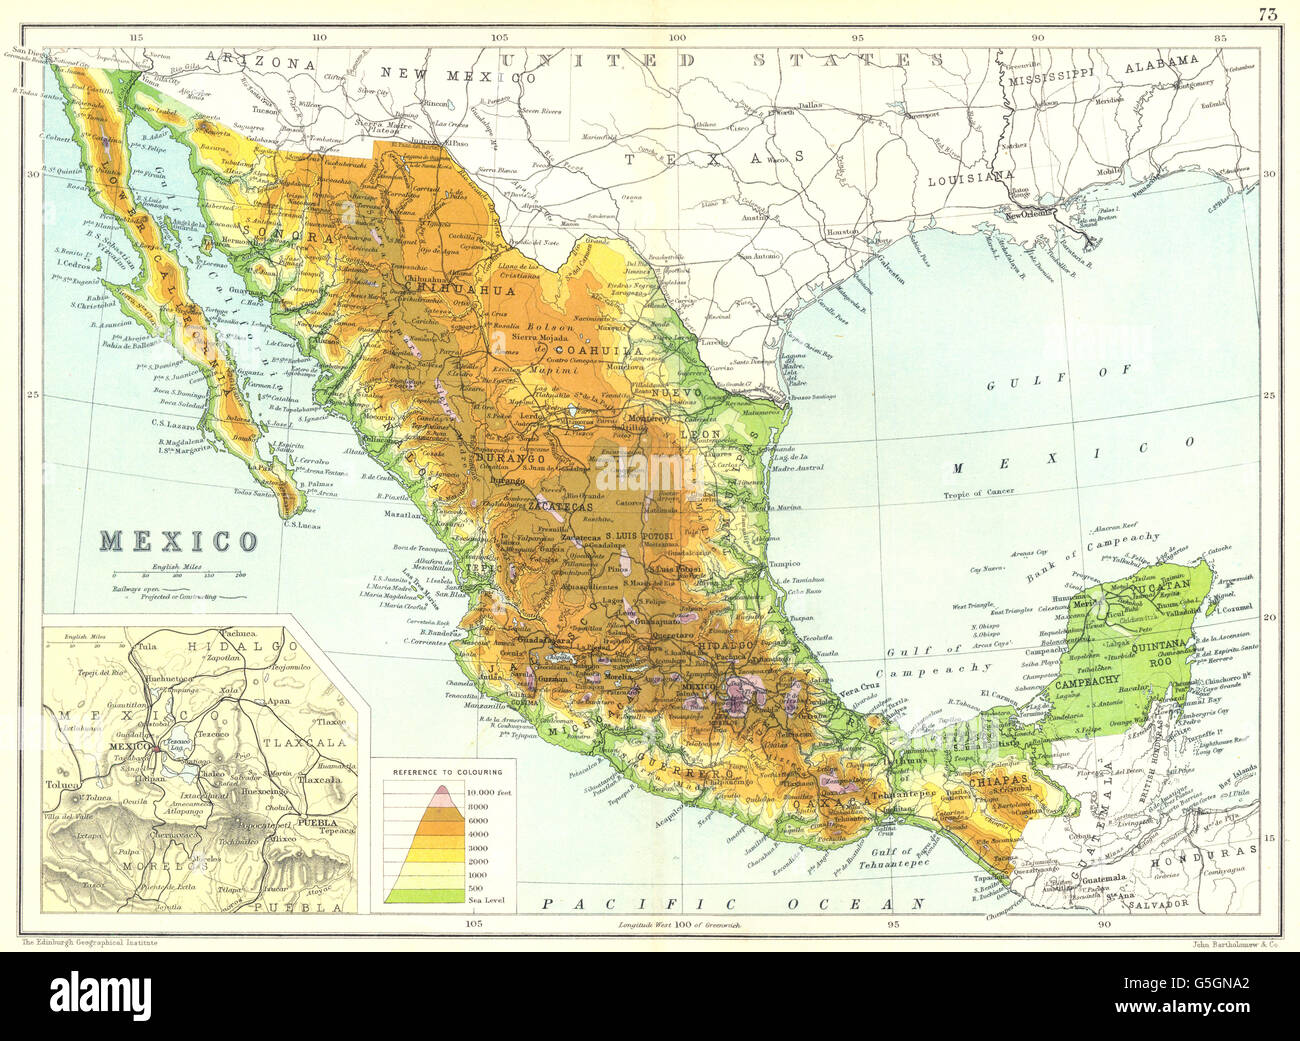 mexico physical map inset map of mexico city area 1909 stock image